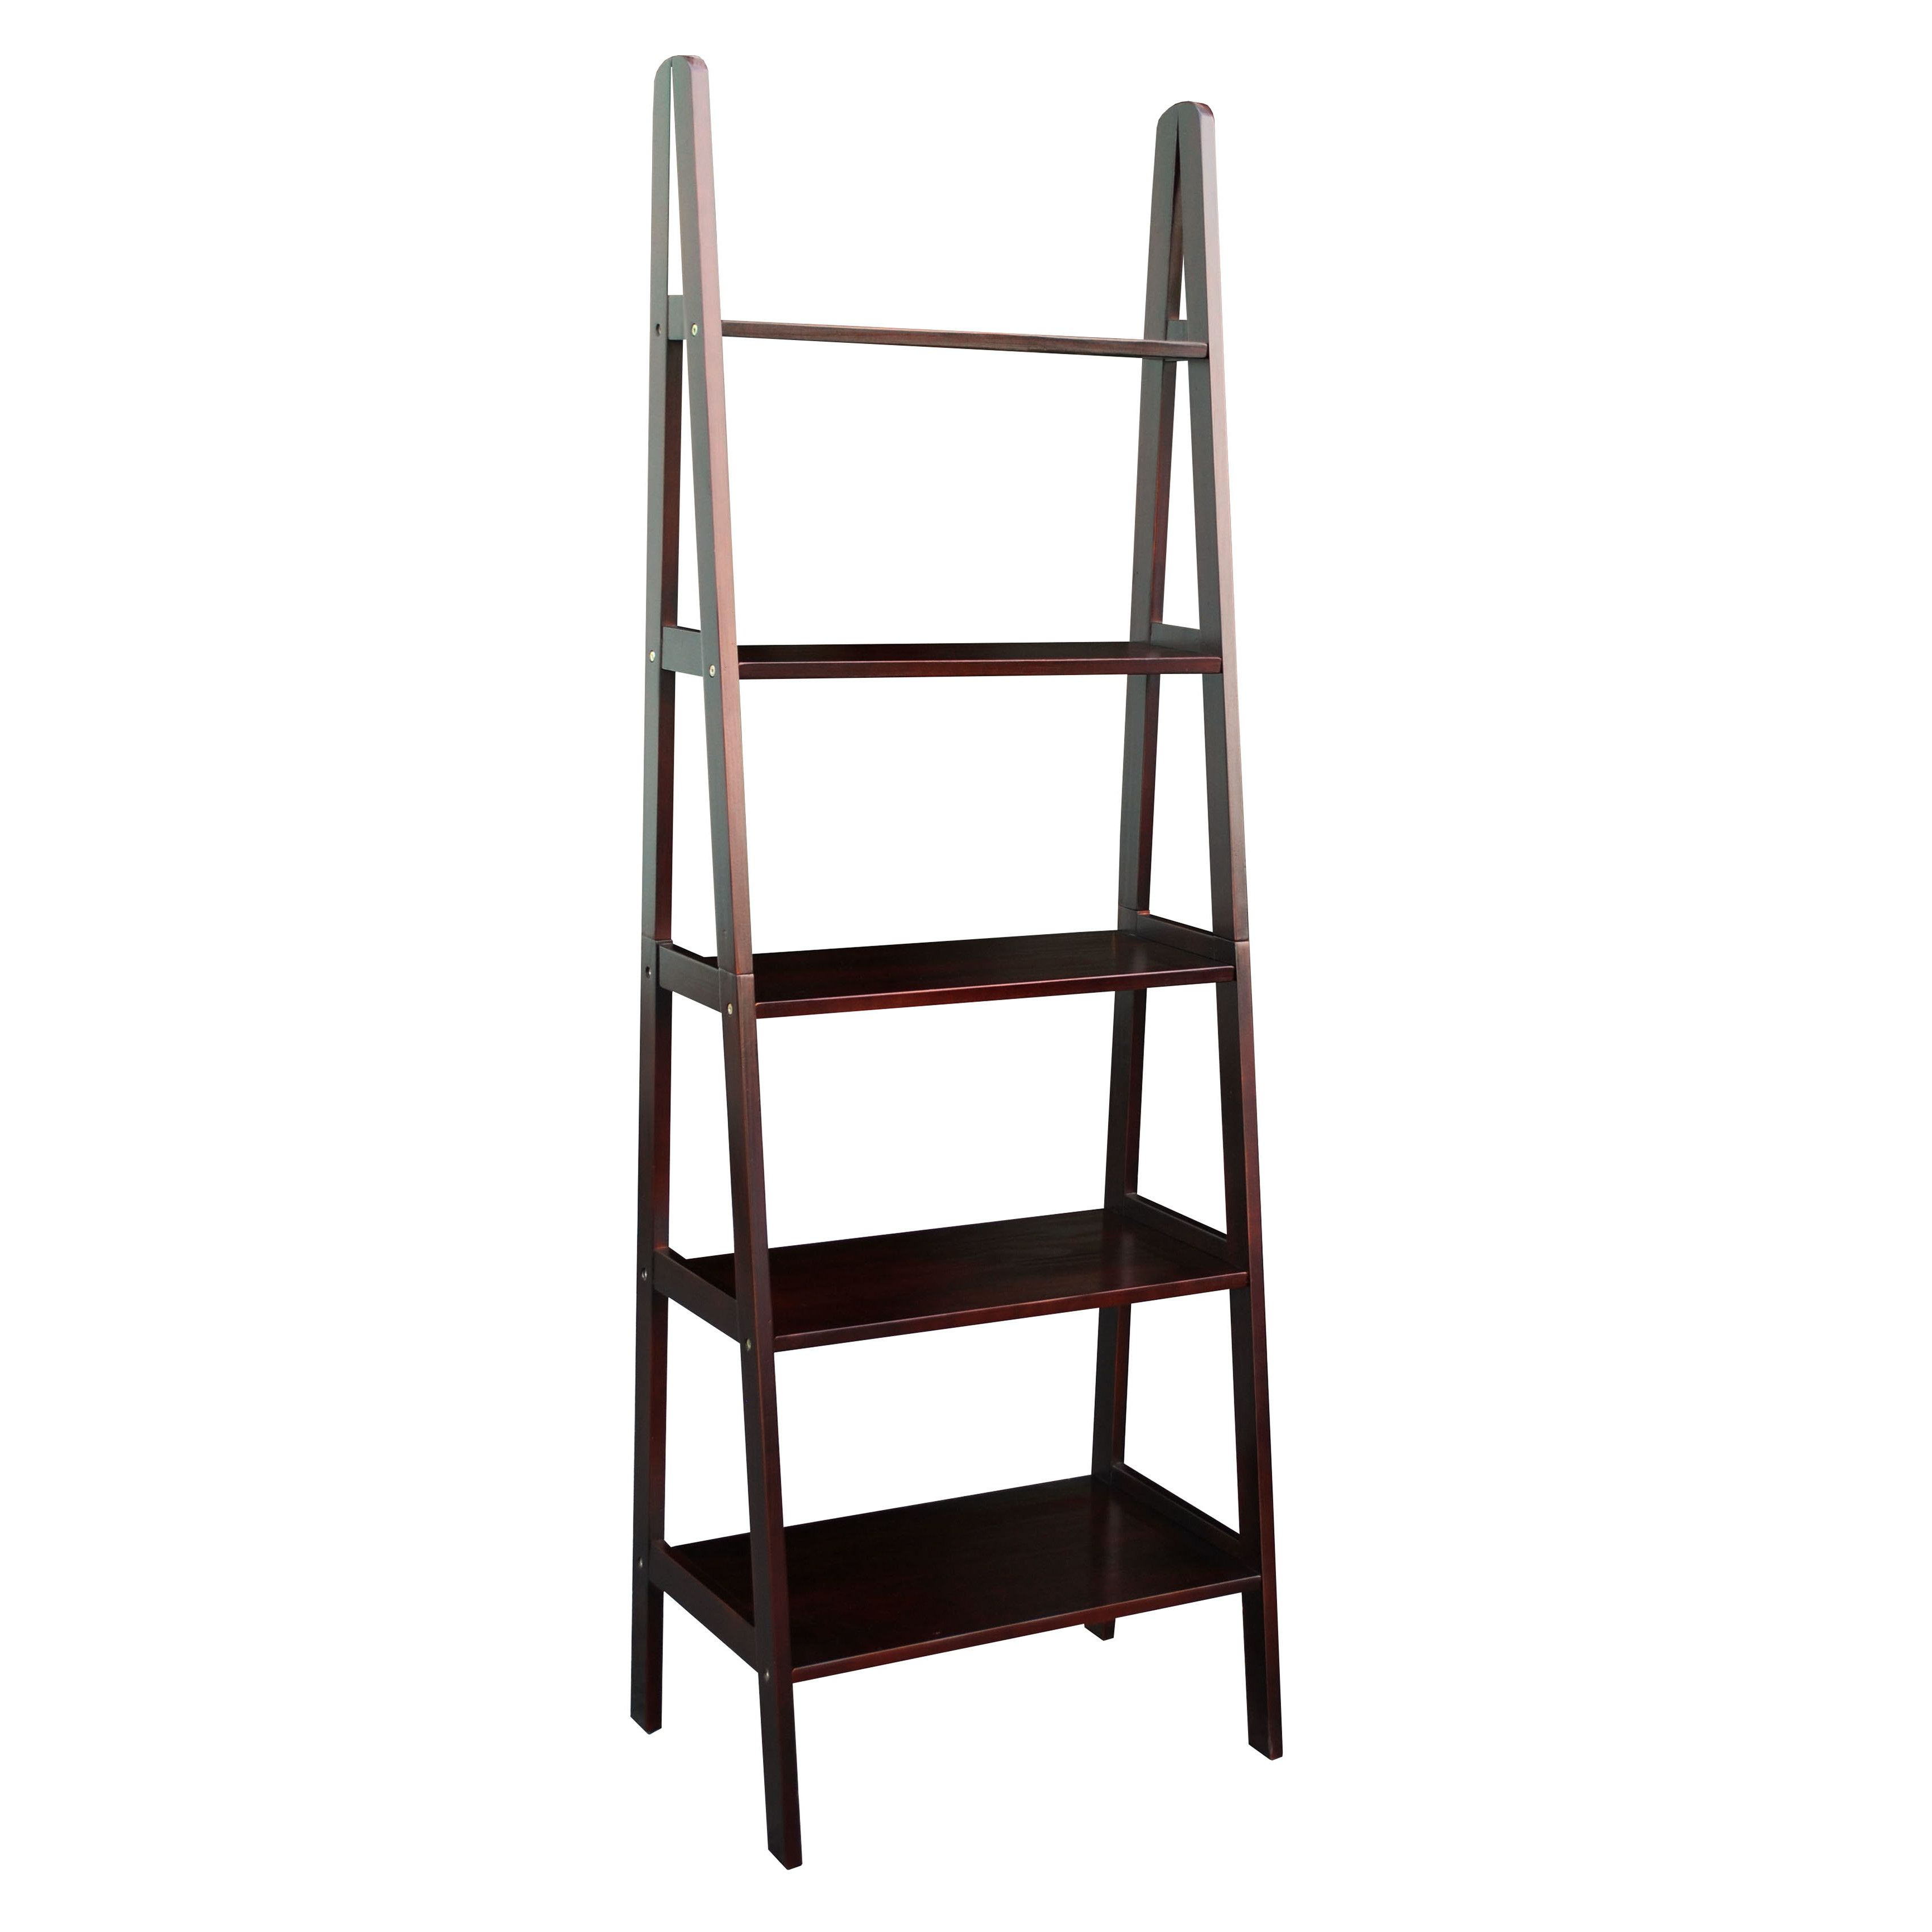 amiphi home info of bookcase shelf impressive furniture pictures leaning size full design bookcases ladder espresso